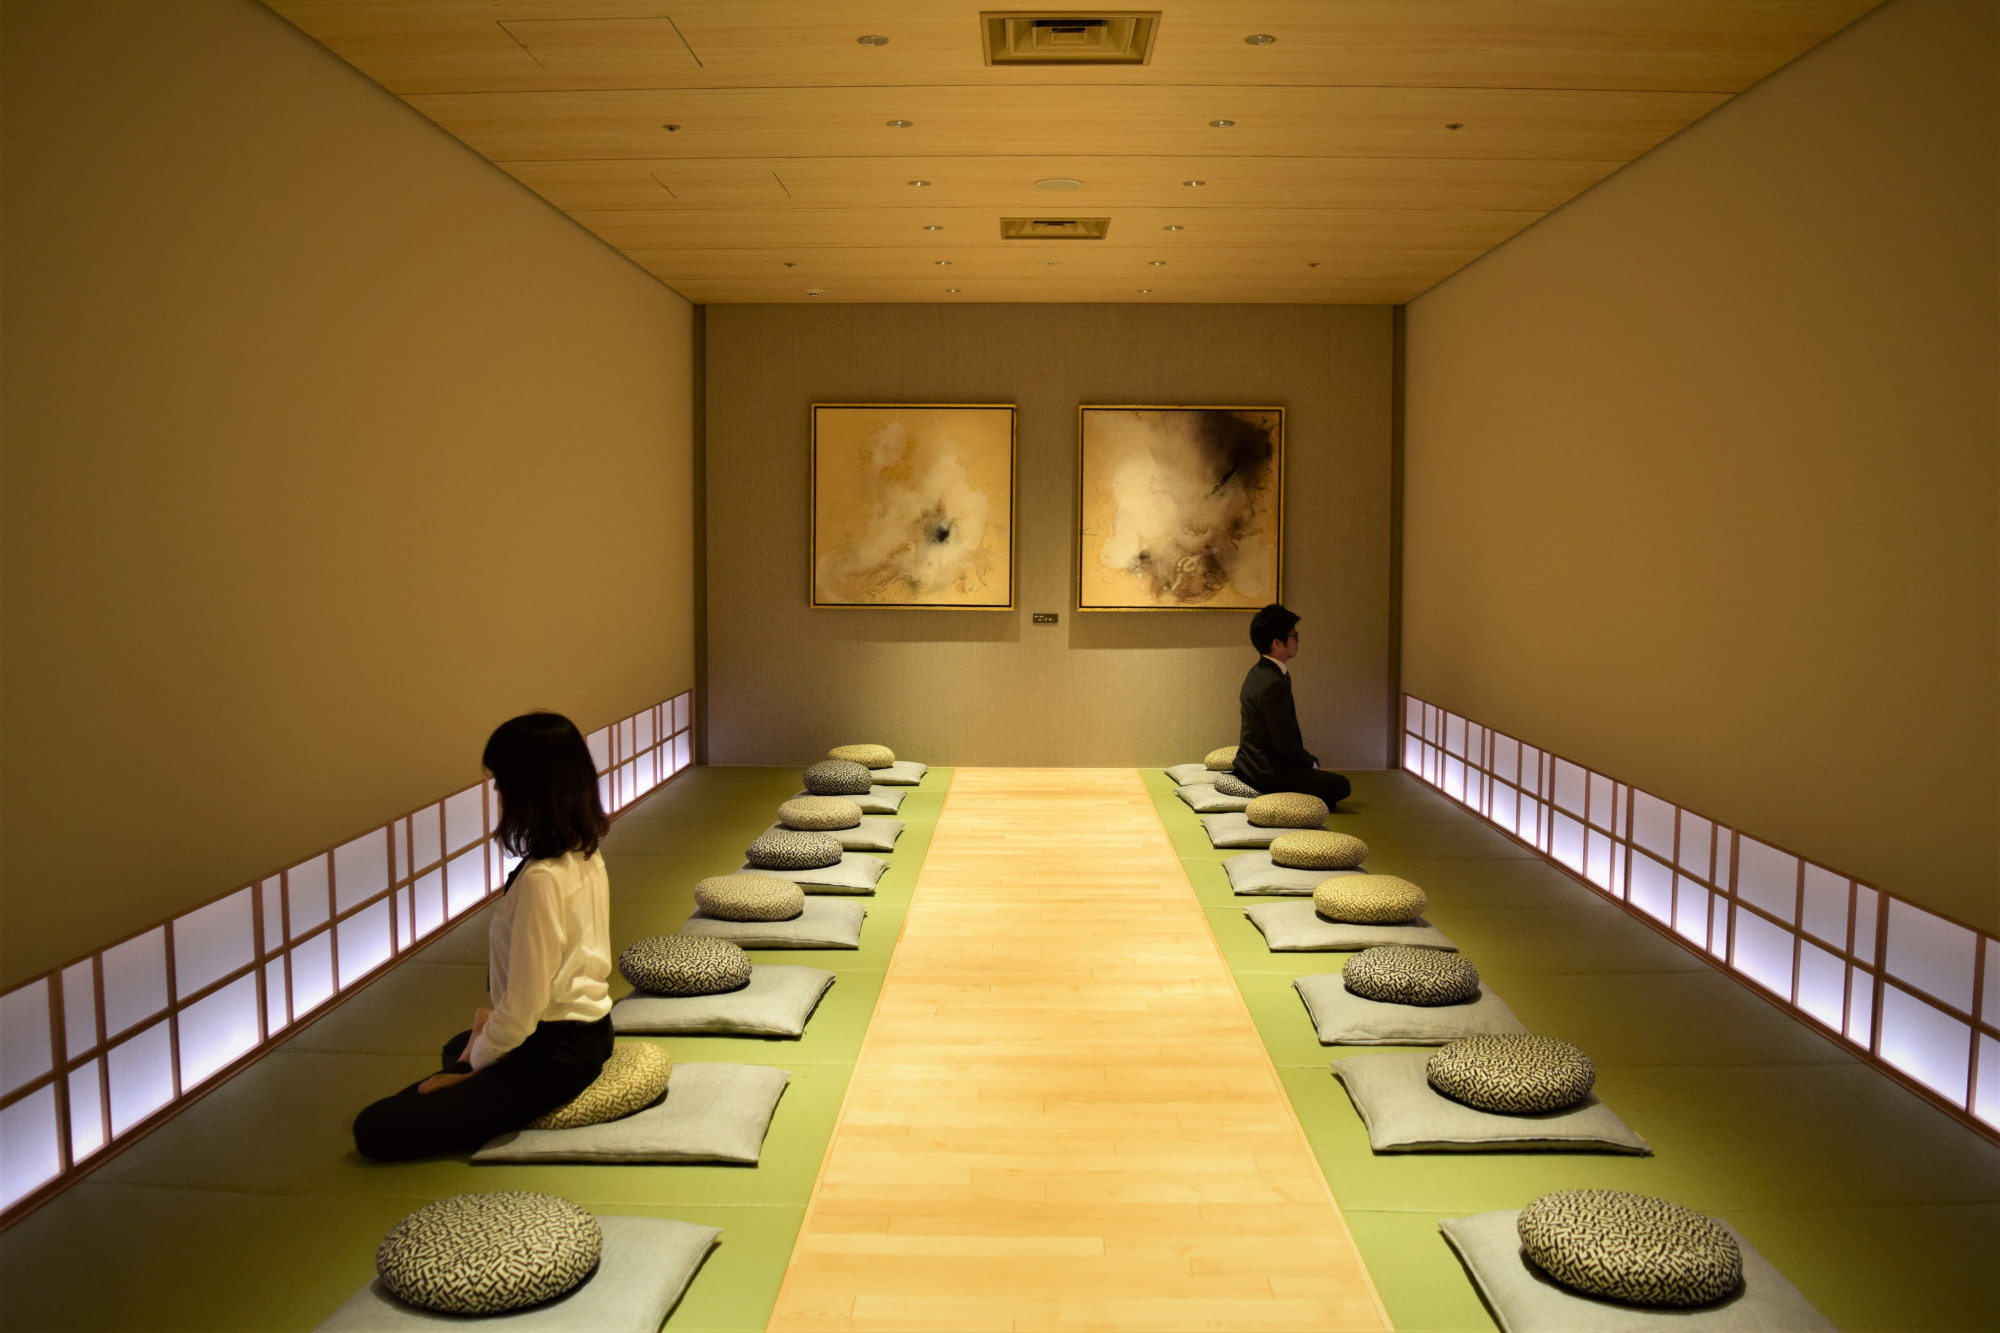 Itoki Corp. installed a meditation room fitted with sound and lighting equipment in its office in Tokyo's Nihonbashi district. Yoga and lessons for mindfulness and mental fitness are sometimes held there. | MASUMI KOIZUMI